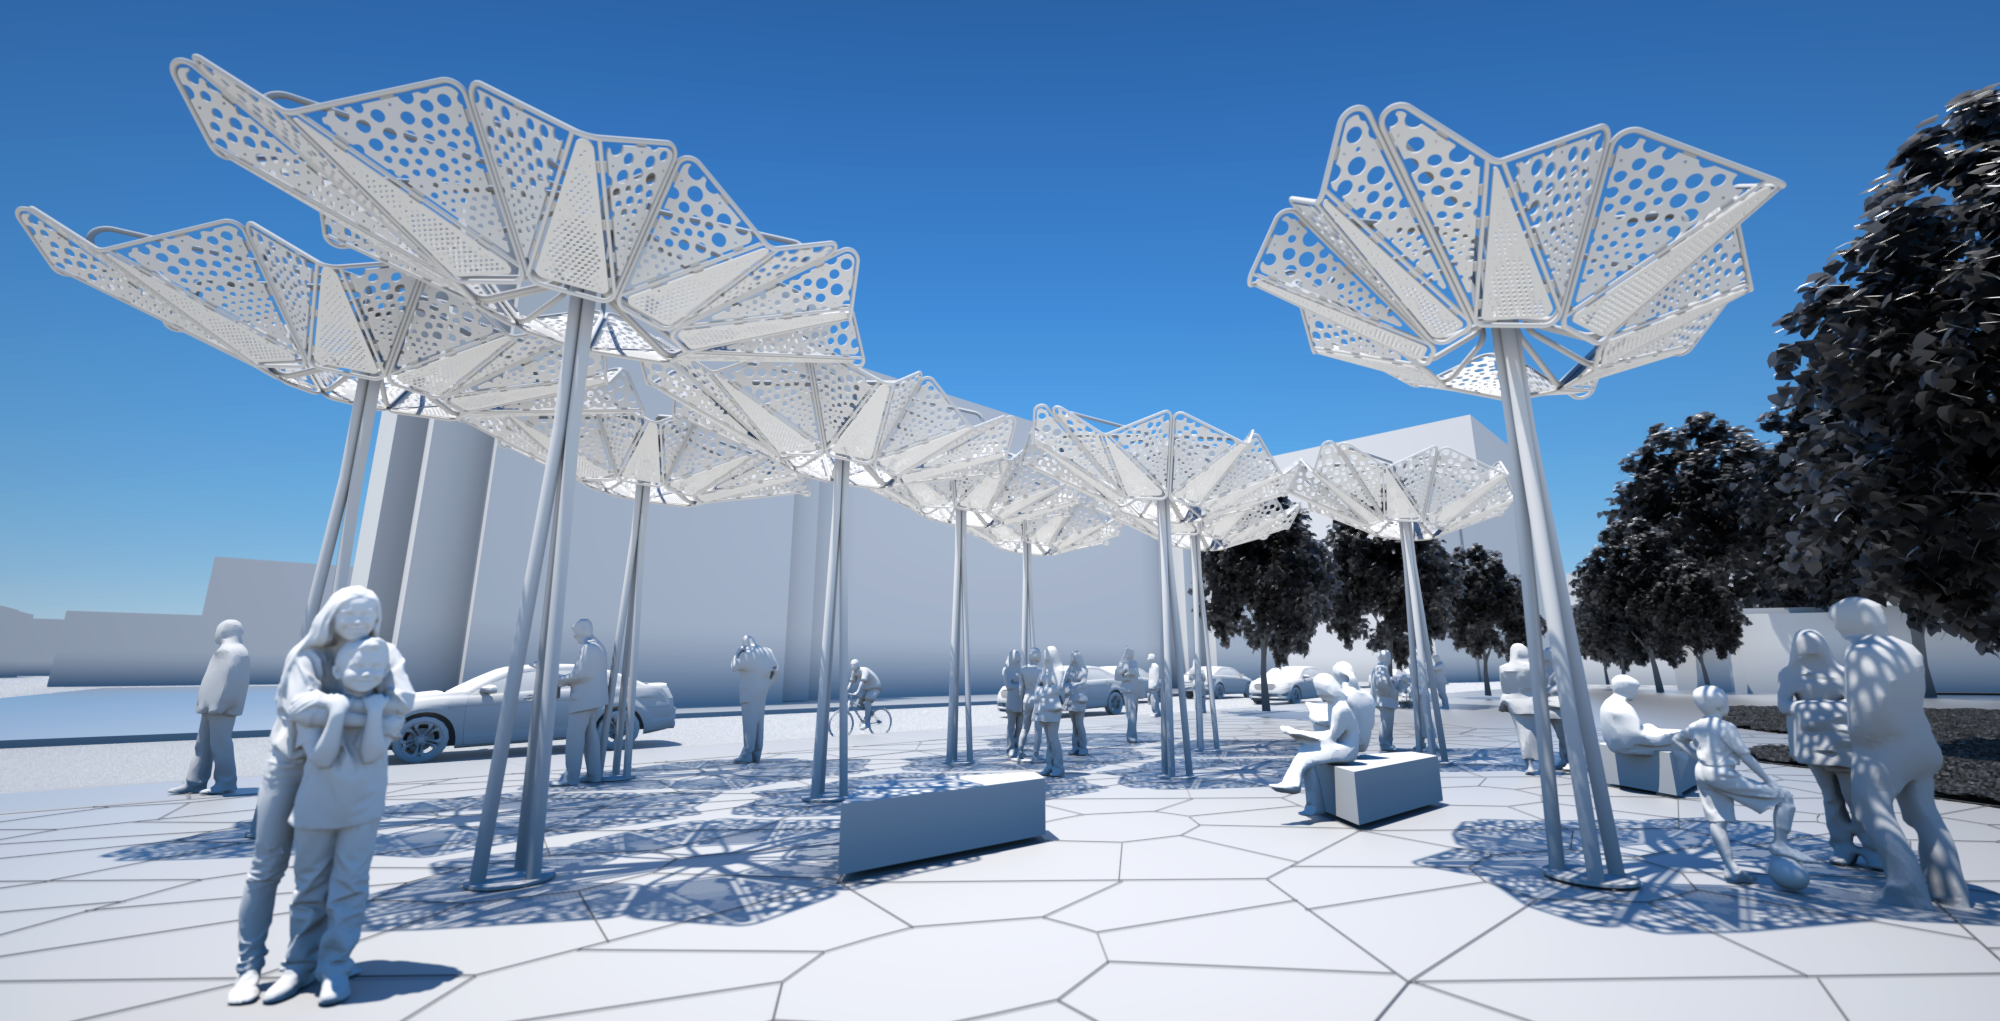 Anemone Canopy Clusters:  The hexagonal tiling pattern allows for larger canopy clusters to be formed (Phase 2 is unbuilt)